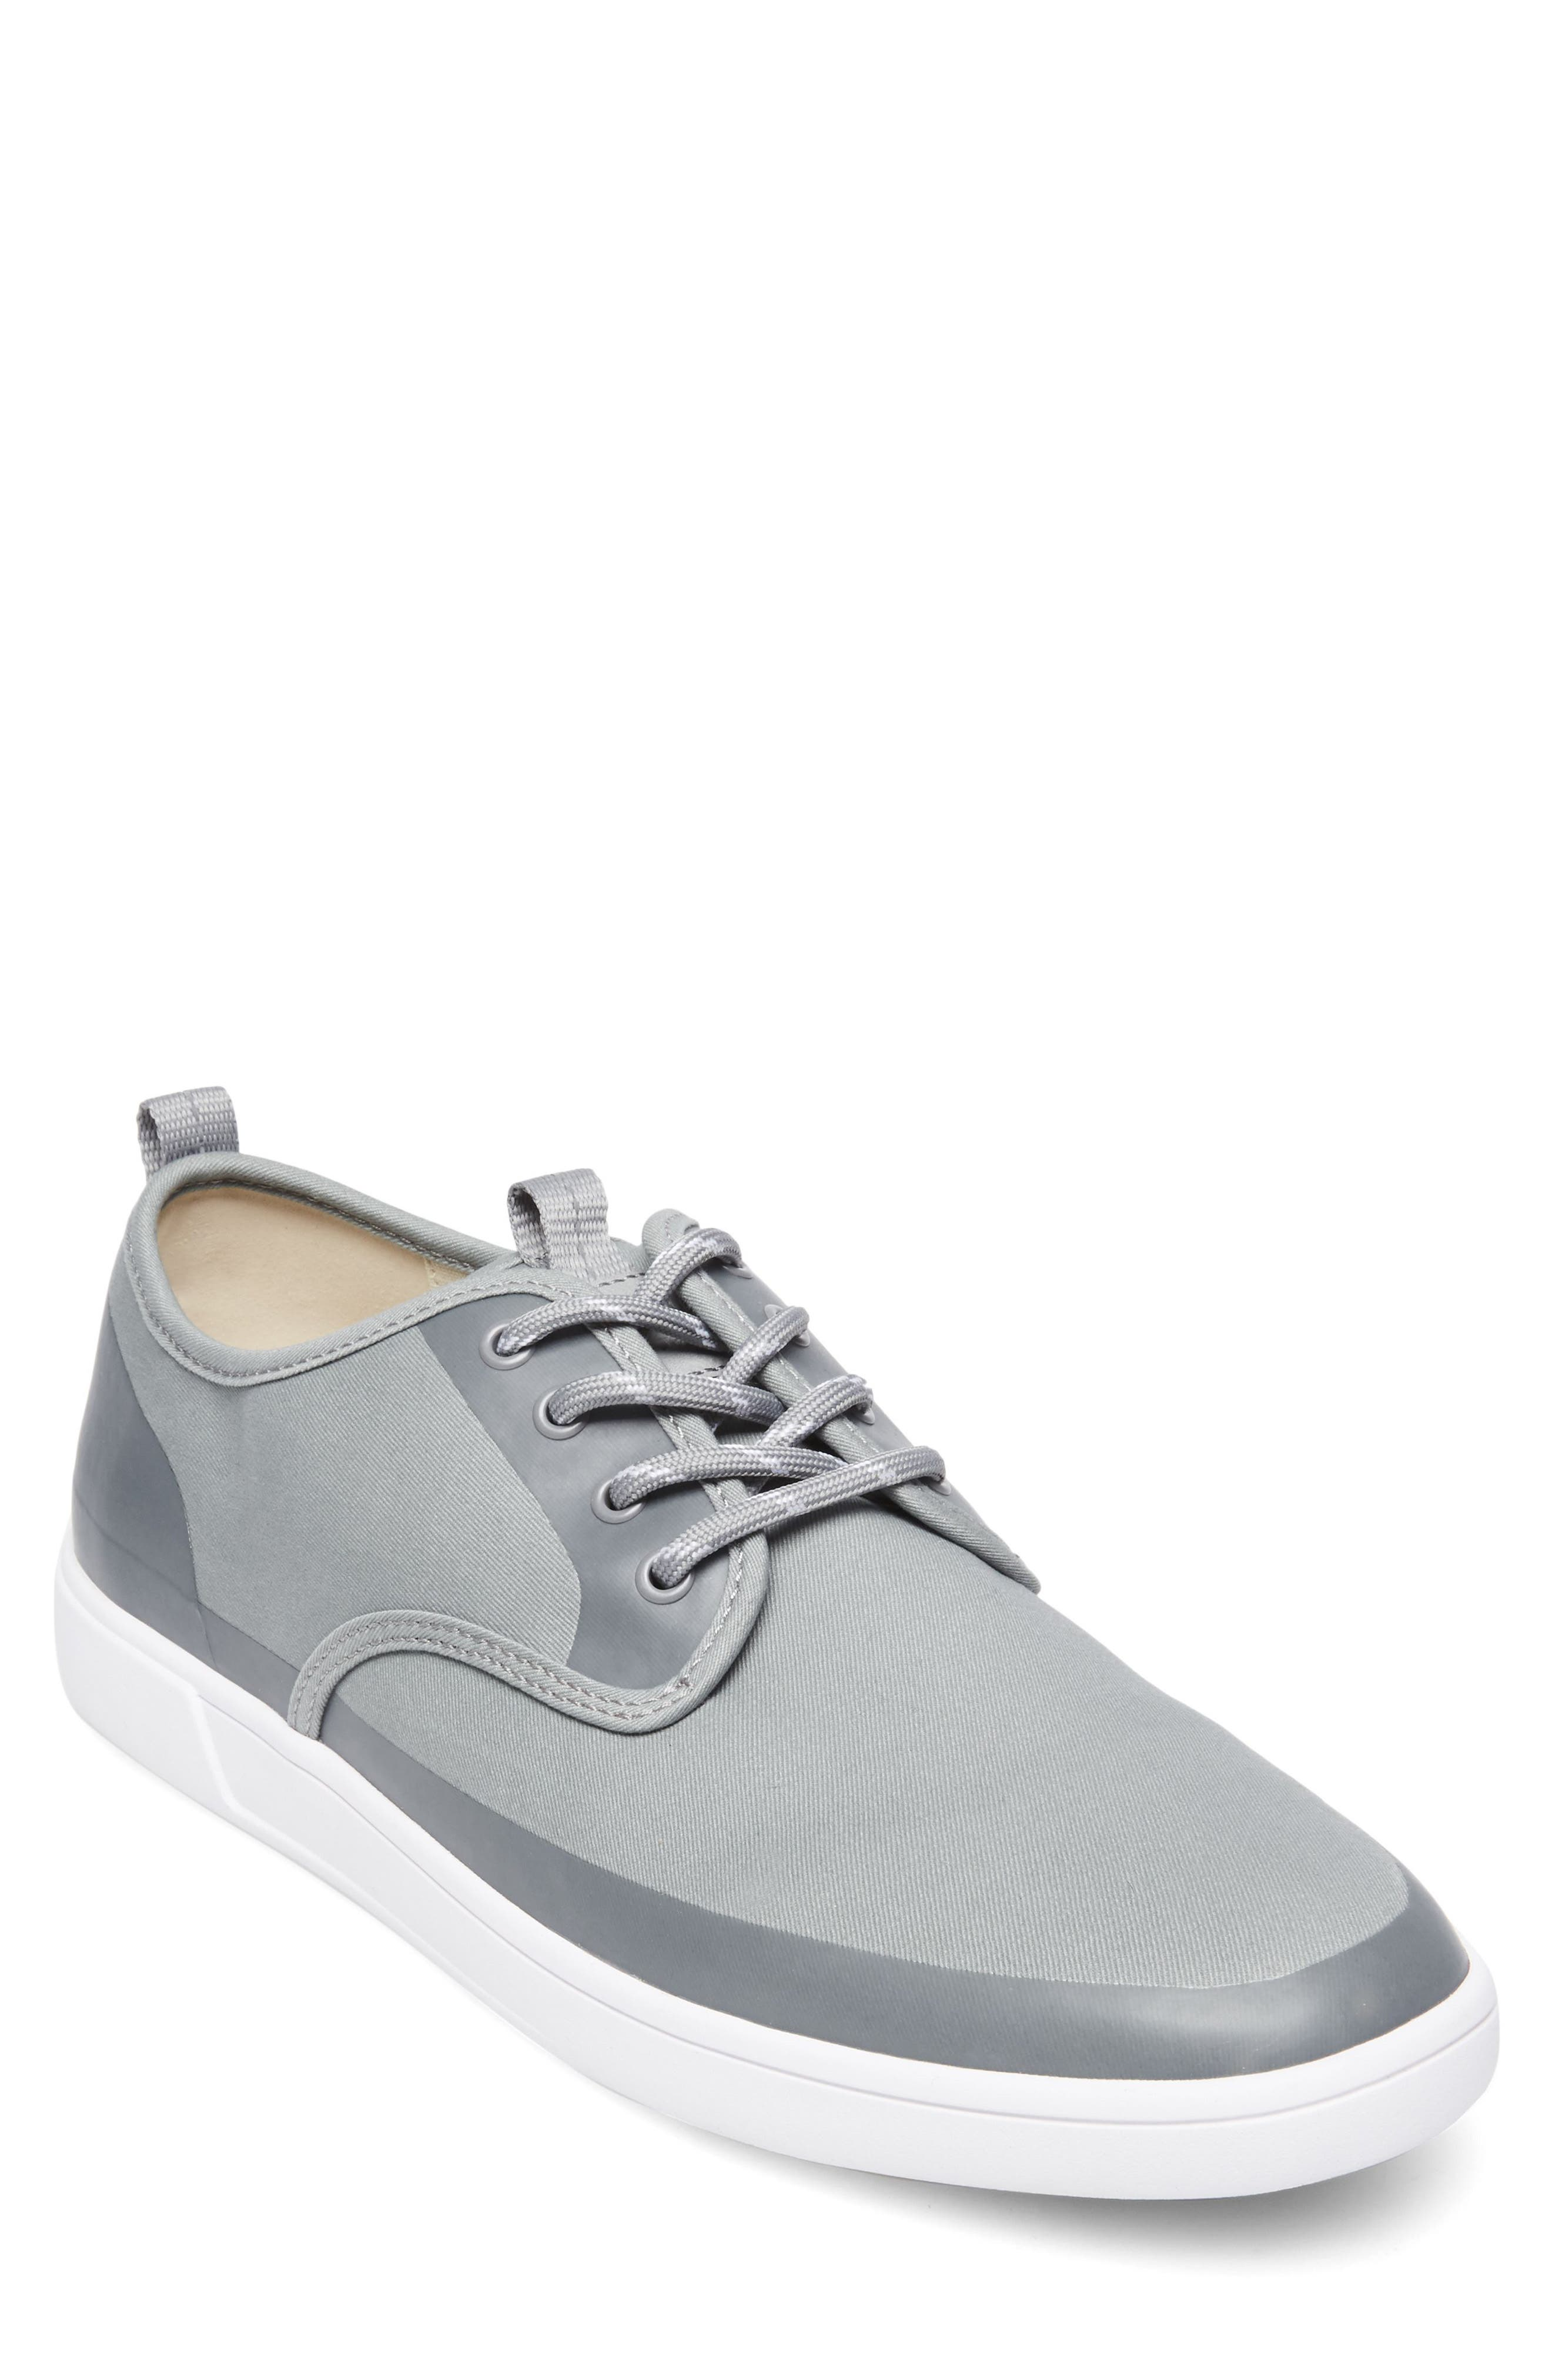 Fayette Low Top Sneaker,                         Main,                         color, Grey Fabric